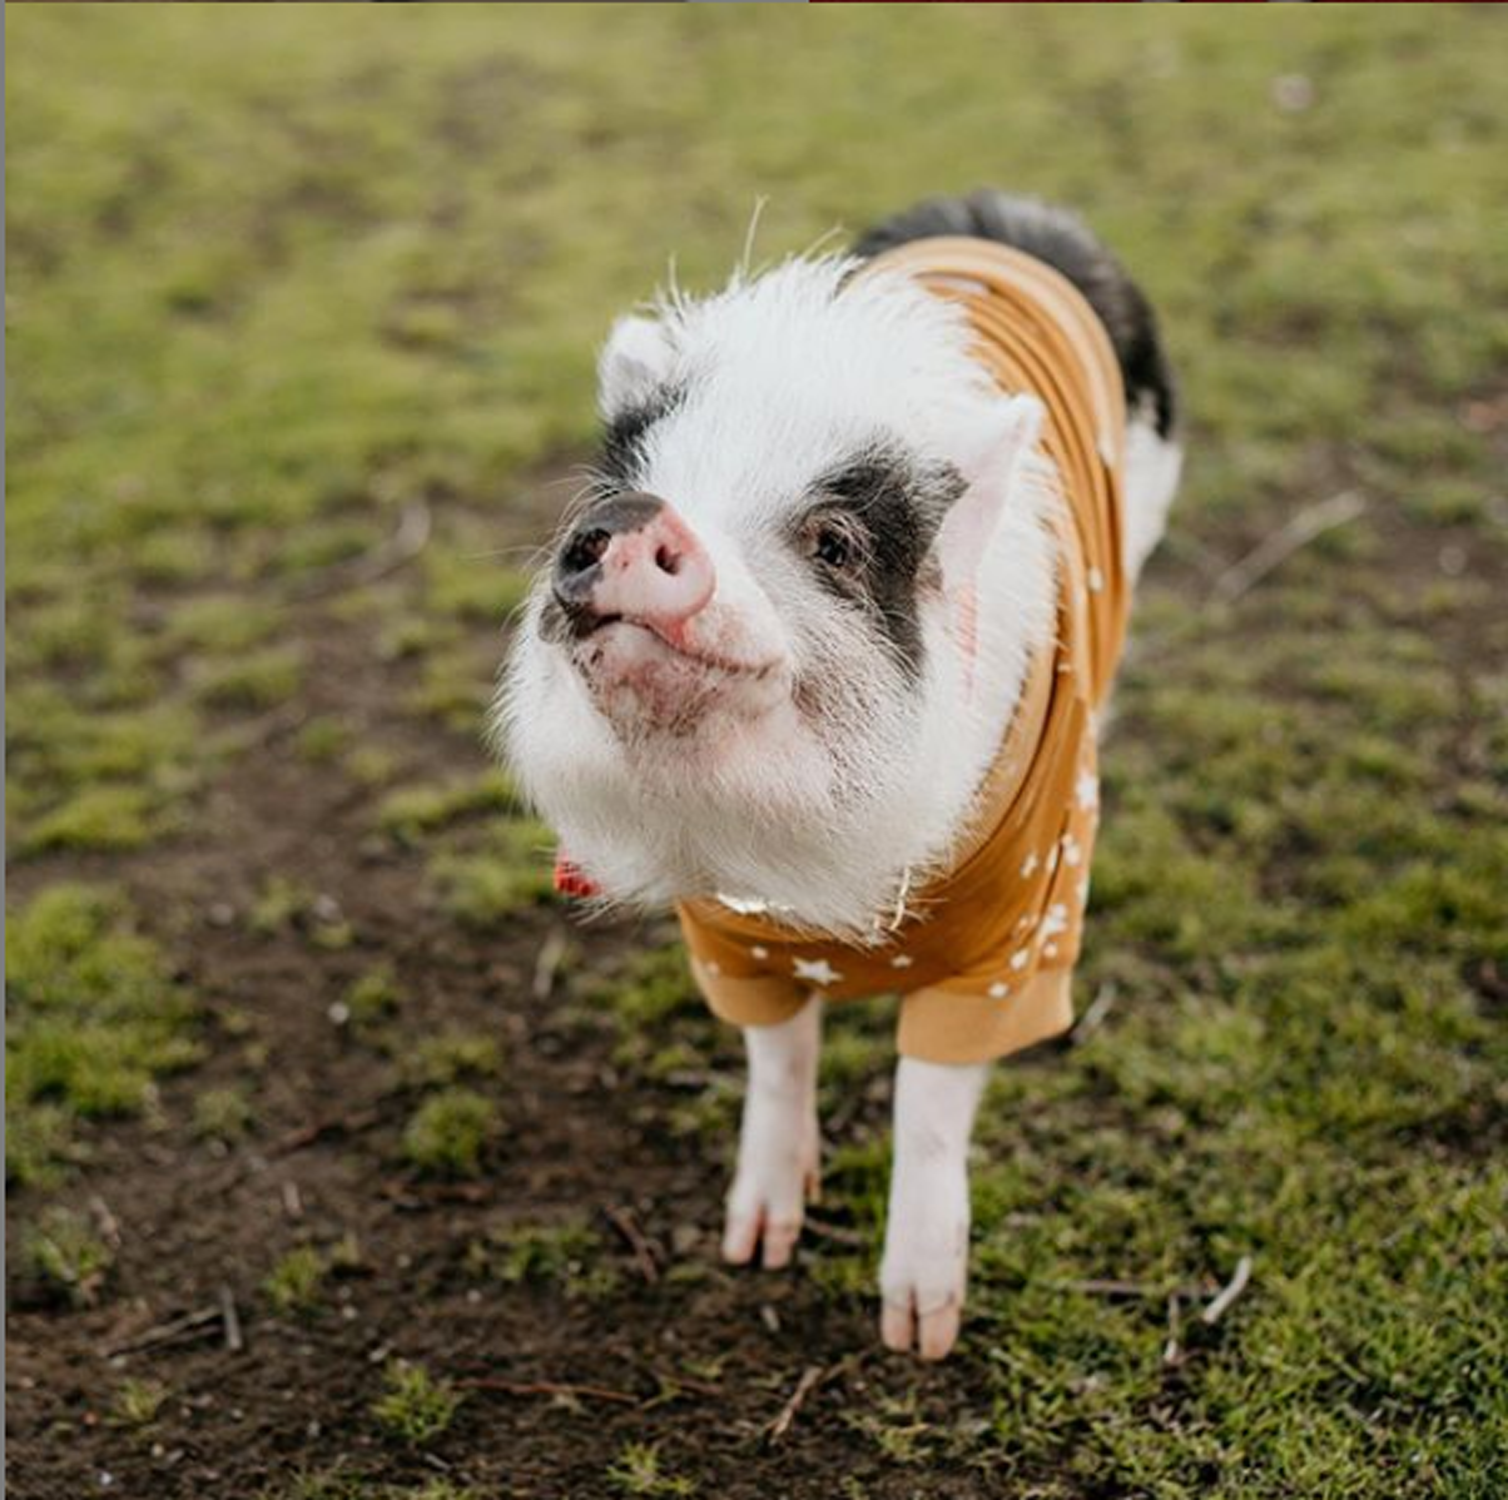 Pickles the Pig